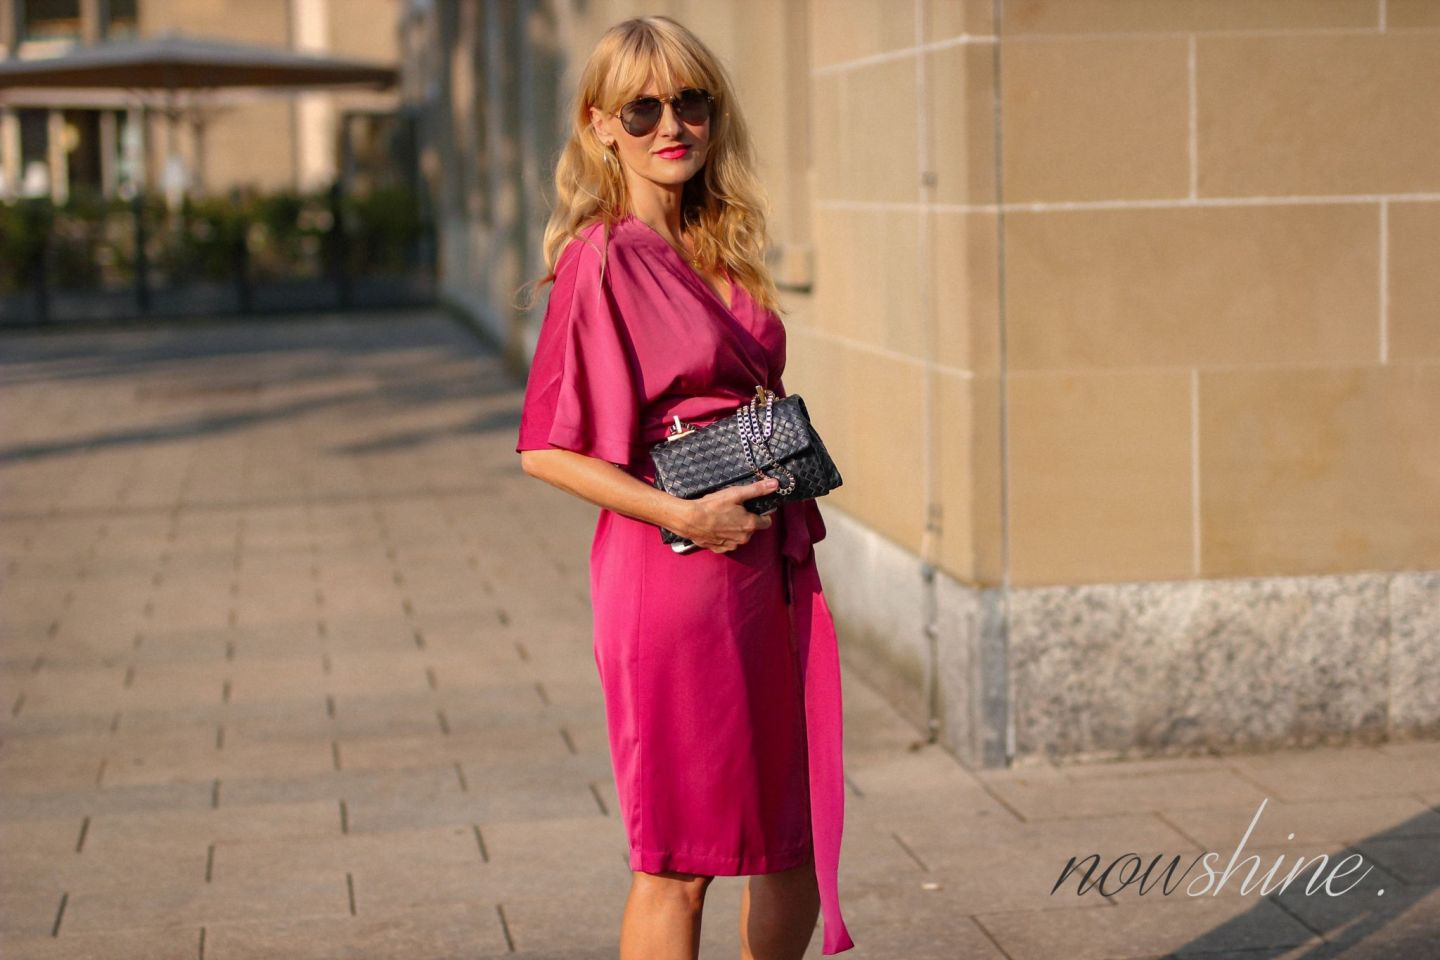 Wrap Dress - Edited Wickelkleid im Kimono Stil - Nowshine ü 40 Blog